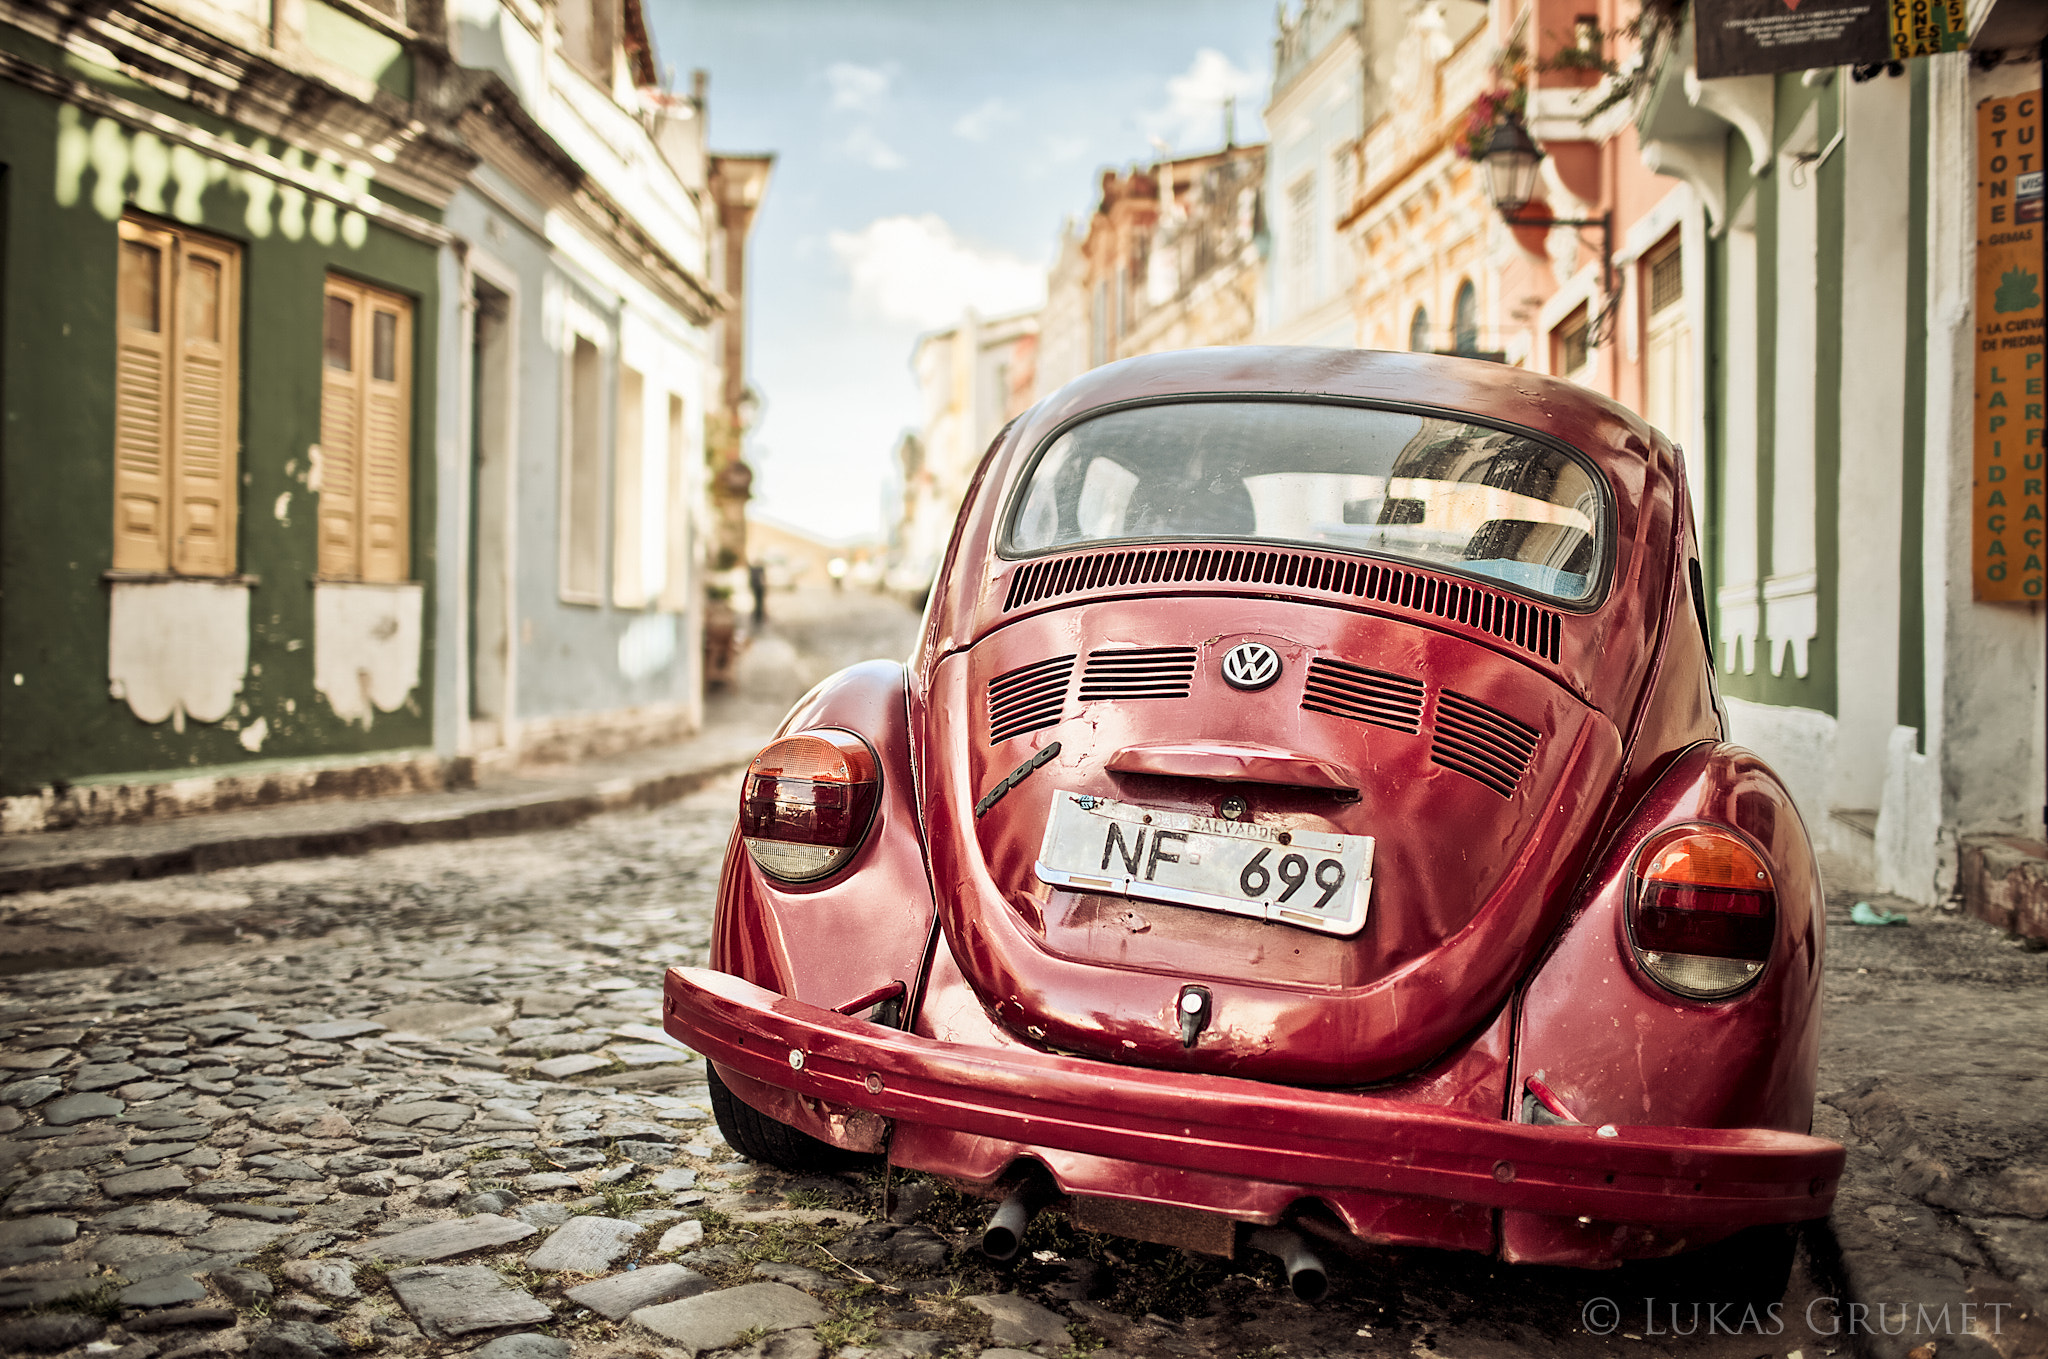 Photograph VW in South America by Lukas Grumet on 500px